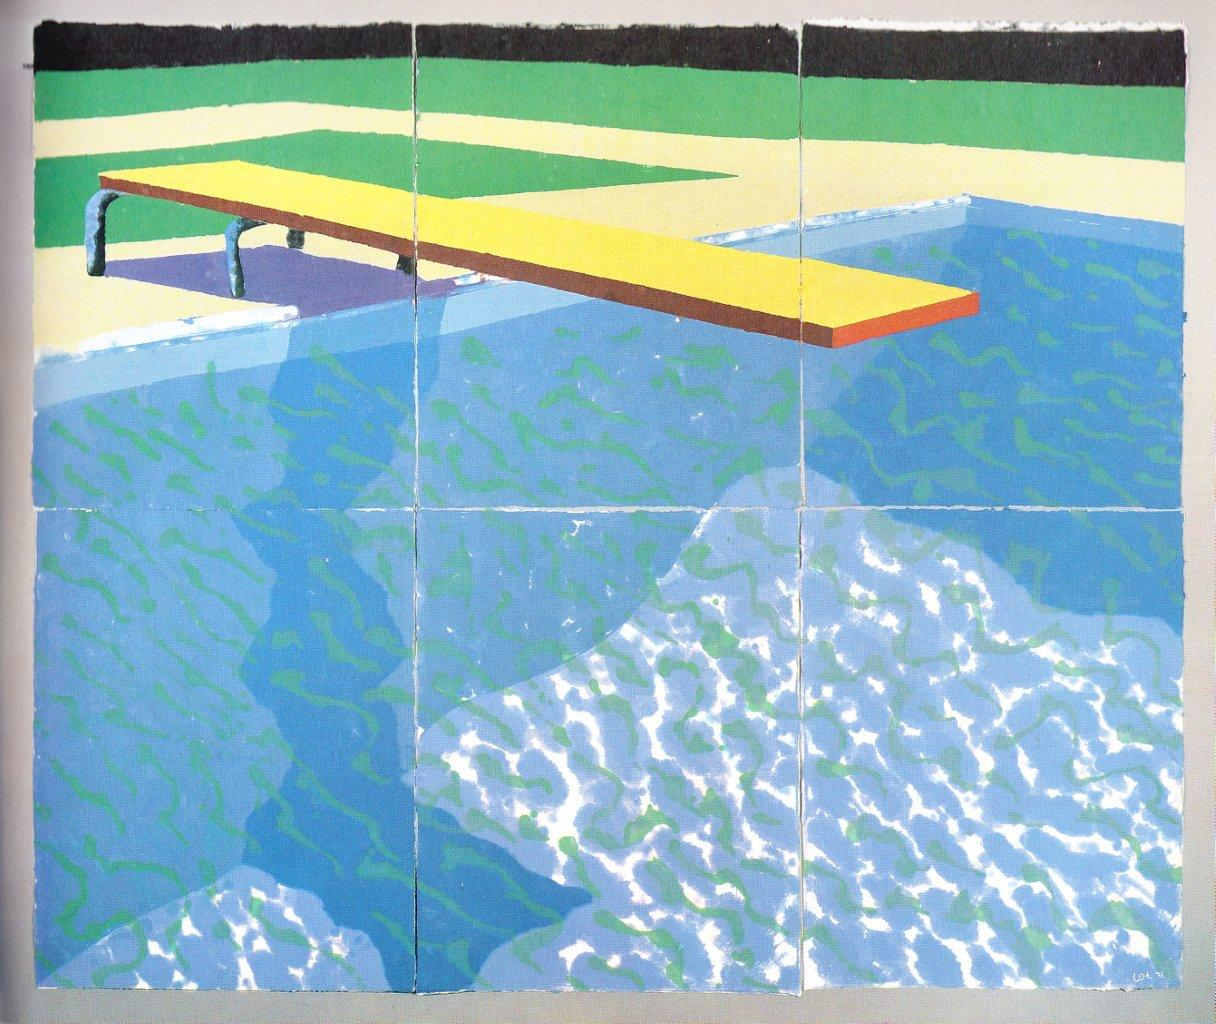 Western independent david hockney at the ra - David hockney swimming pool paintings ...